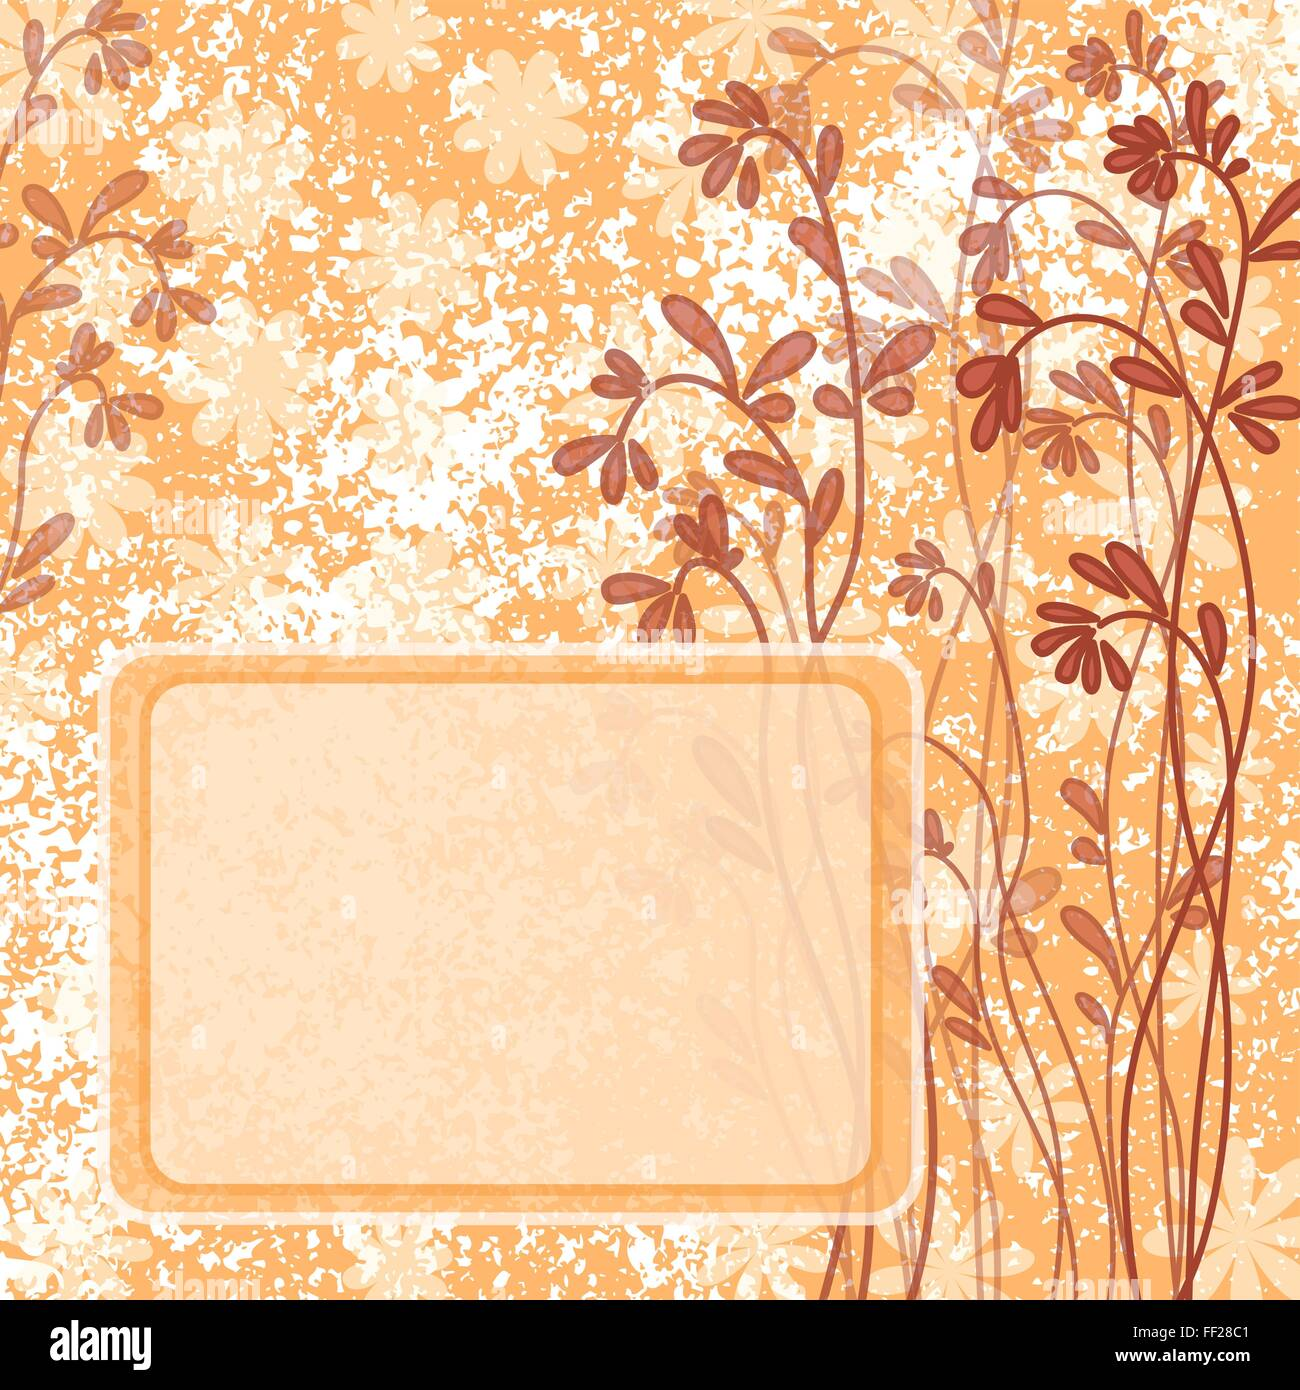 October birthday flower stock vector images alamy background flowers and frame stock vector izmirmasajfo